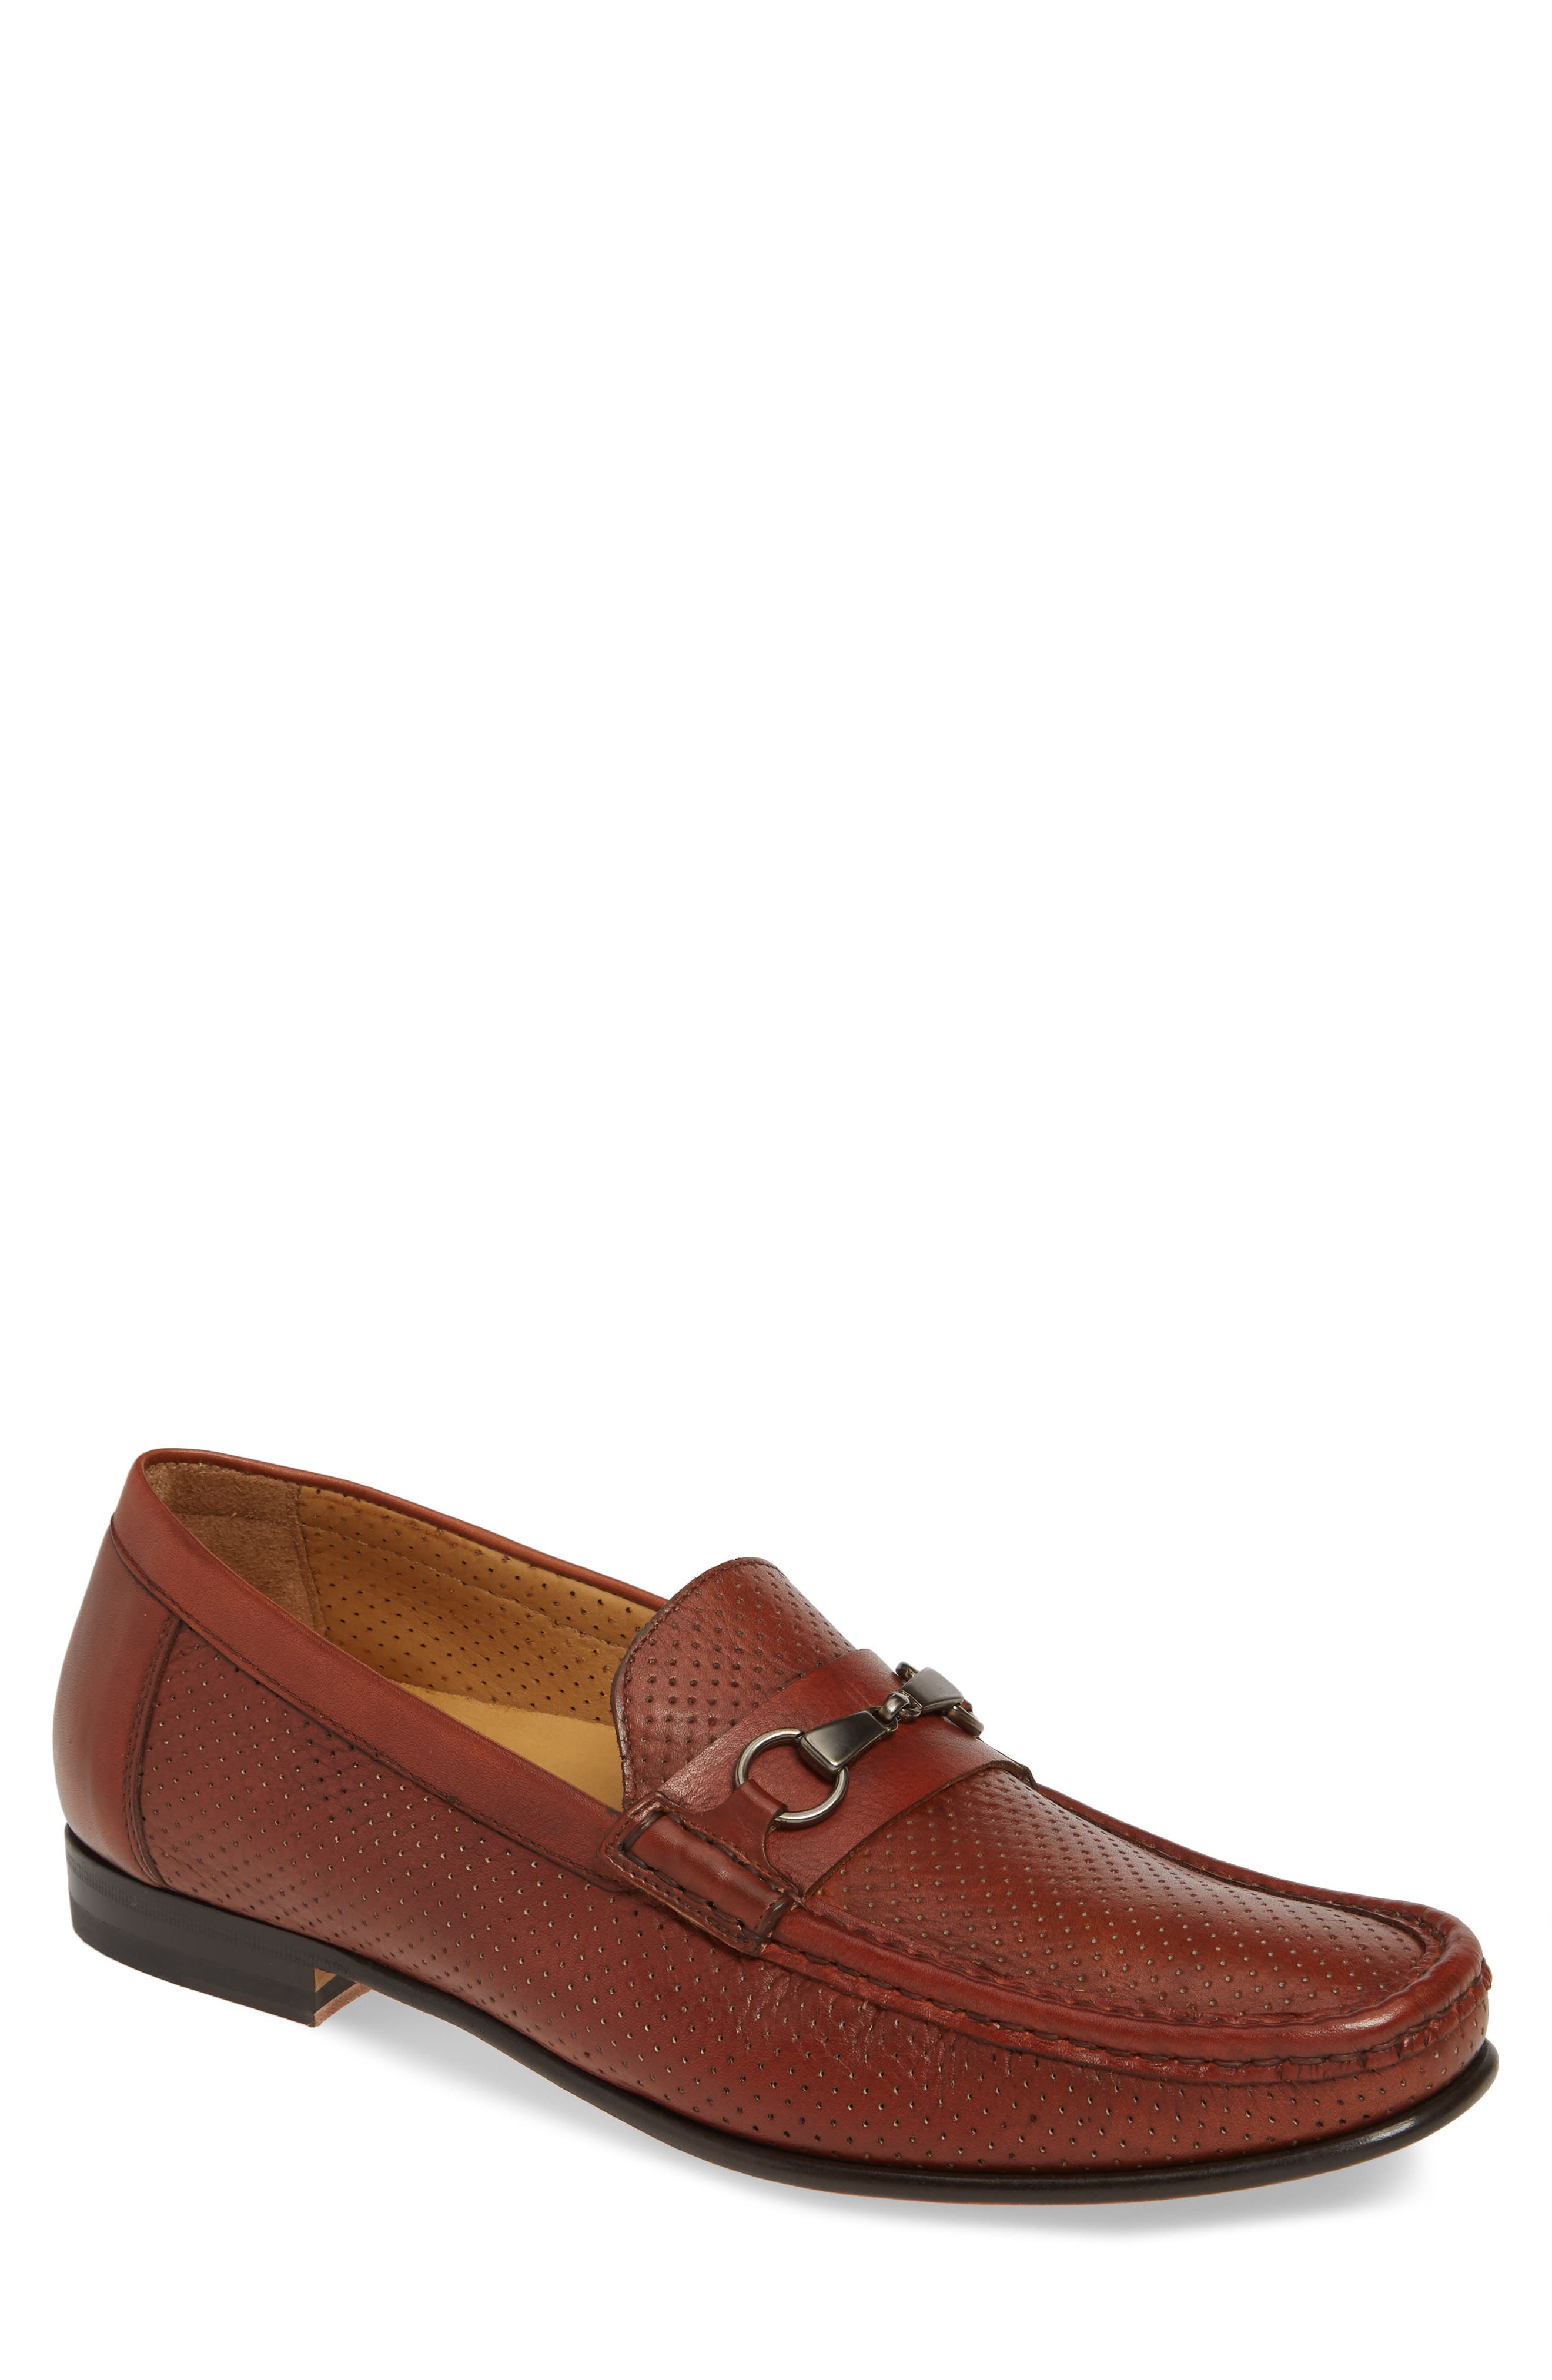 Mezlan Perforated Bit Loafer- Brown